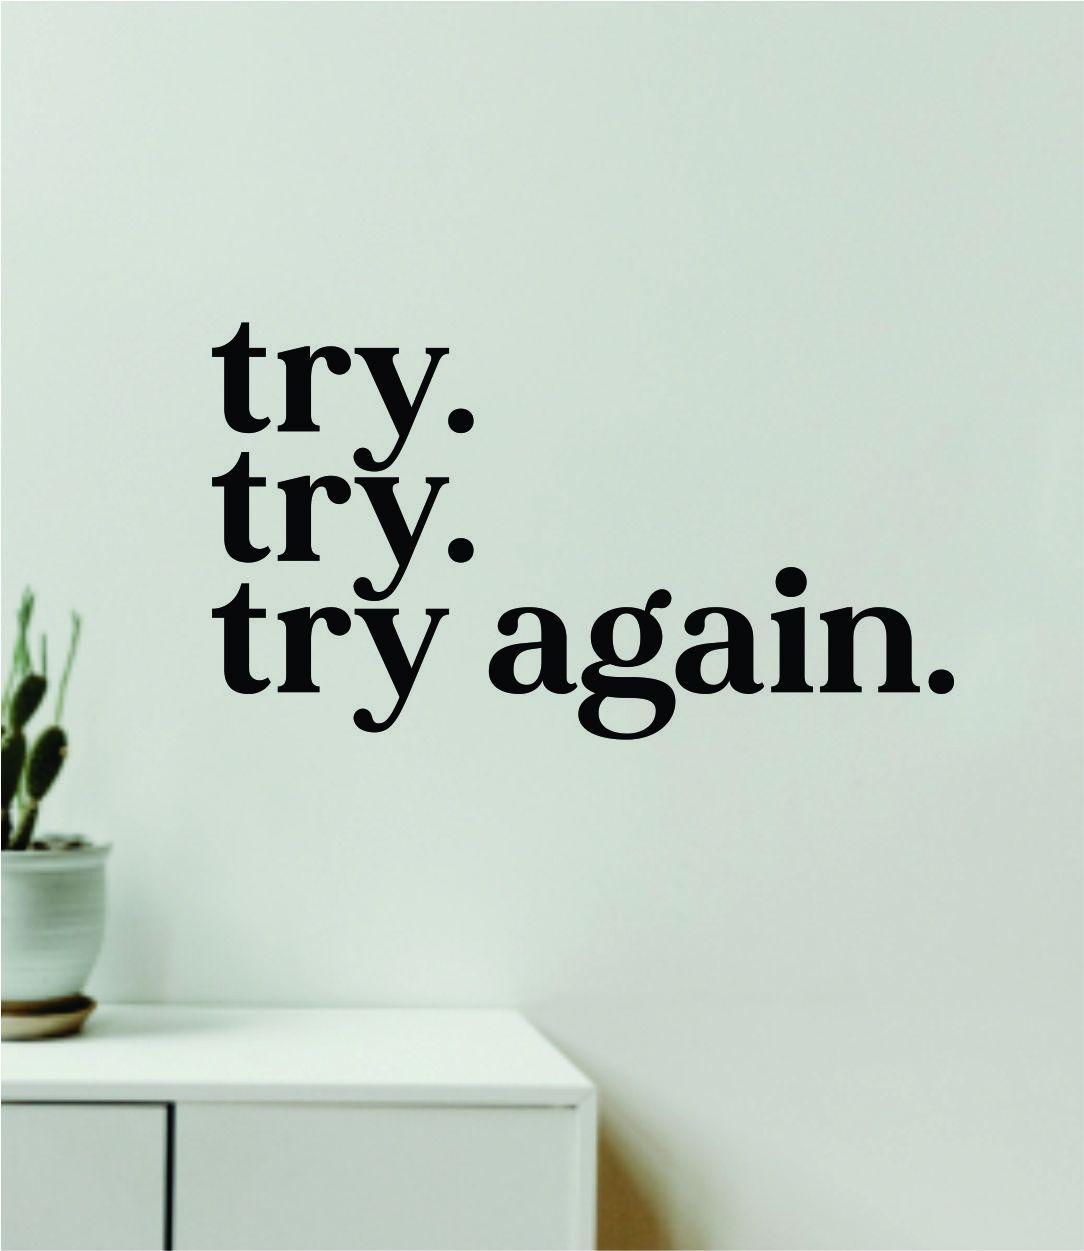 Try Try Try Again Quote Wall Decal Sticker Vinyl Art Decor Bedroom Room Girls Inspirational Motivational School Nursery Baby Sports Gym Fitness - red